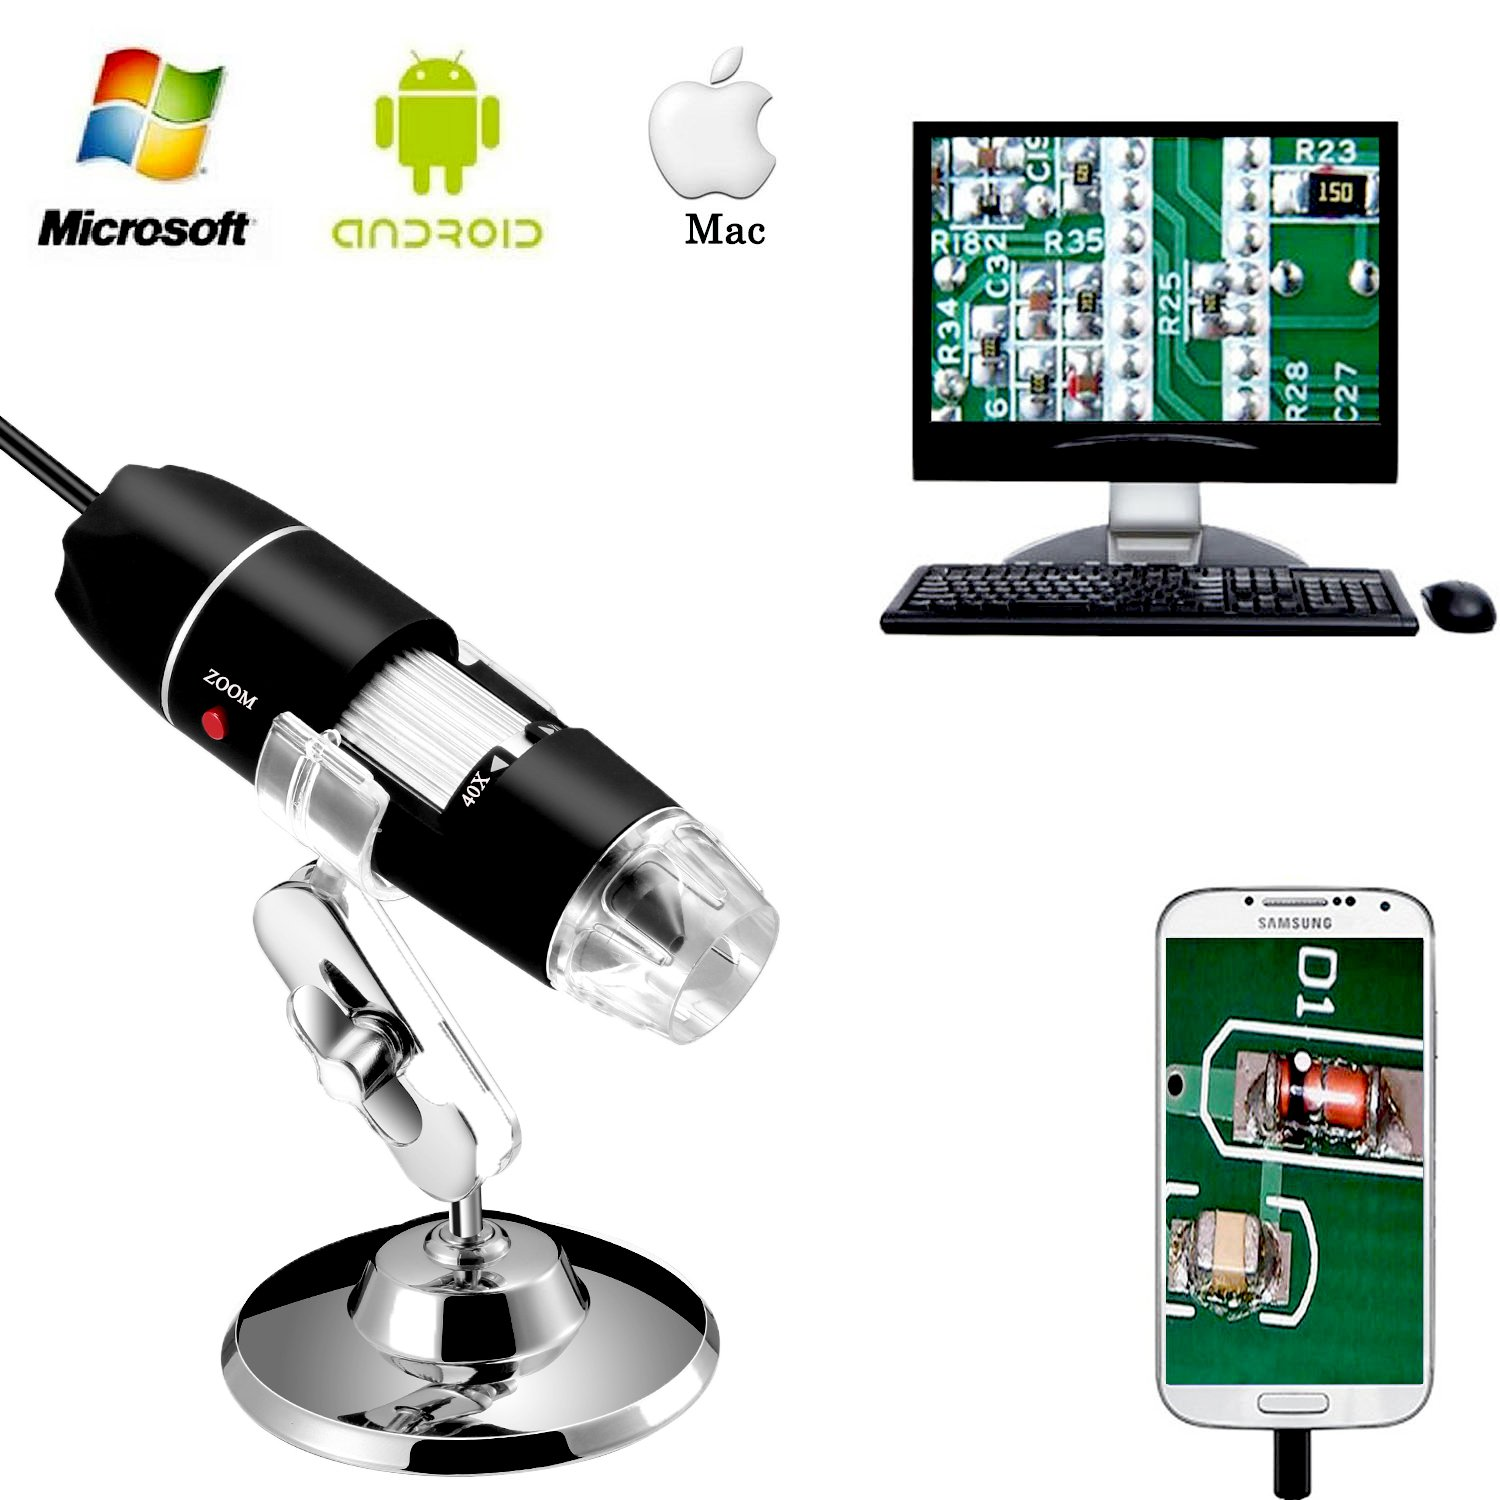 Jiusion 40 to 1000x Magnification Endoscope, 8 LED USB 2.0 Digital Microscope, Mini Camera with OTG Adapter and Metal Stand, Compatible with Mac Window 7 8 10 Android Linux by Jiusion